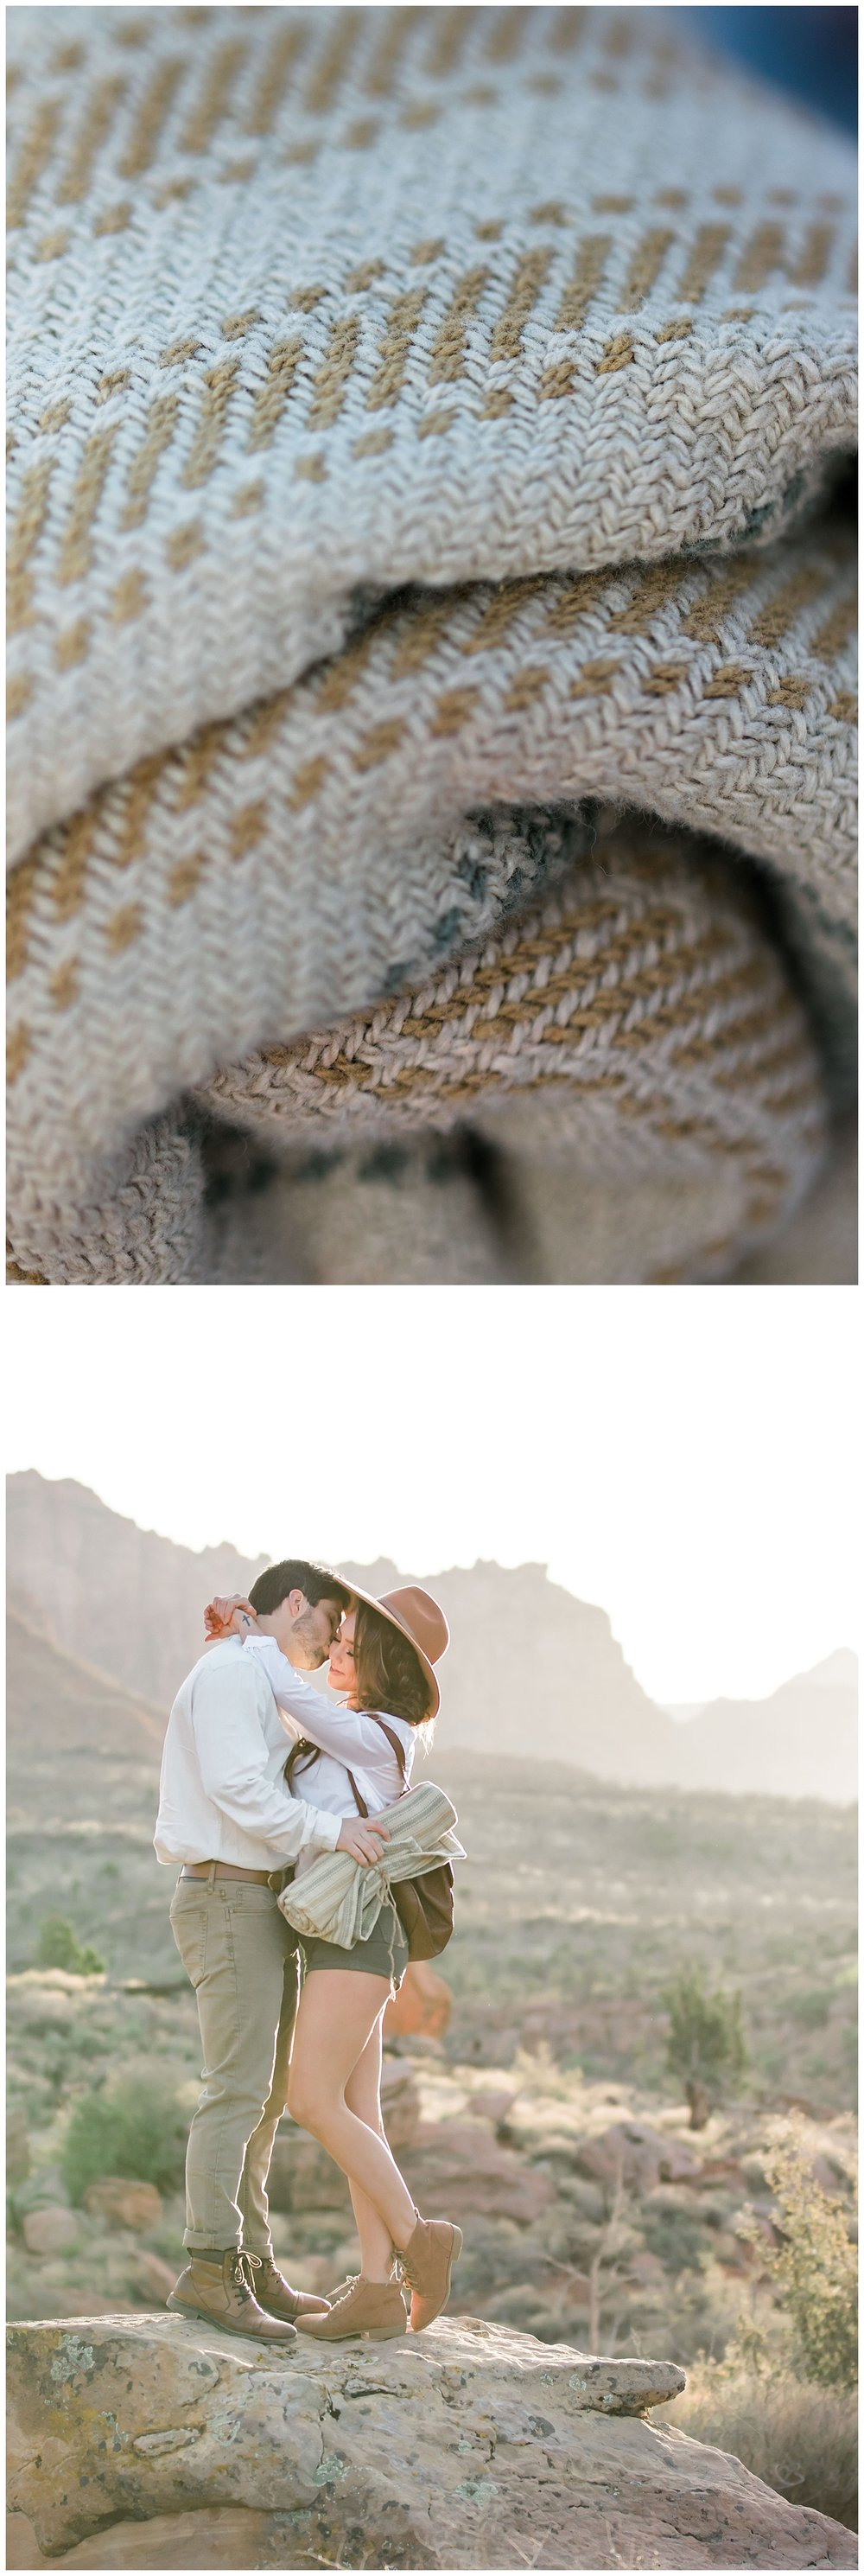 Elizabeth M Photography Northern Virginia Destination Wedding and Elopement Photographer Adventure Photography Zion National Park_0148.jpg